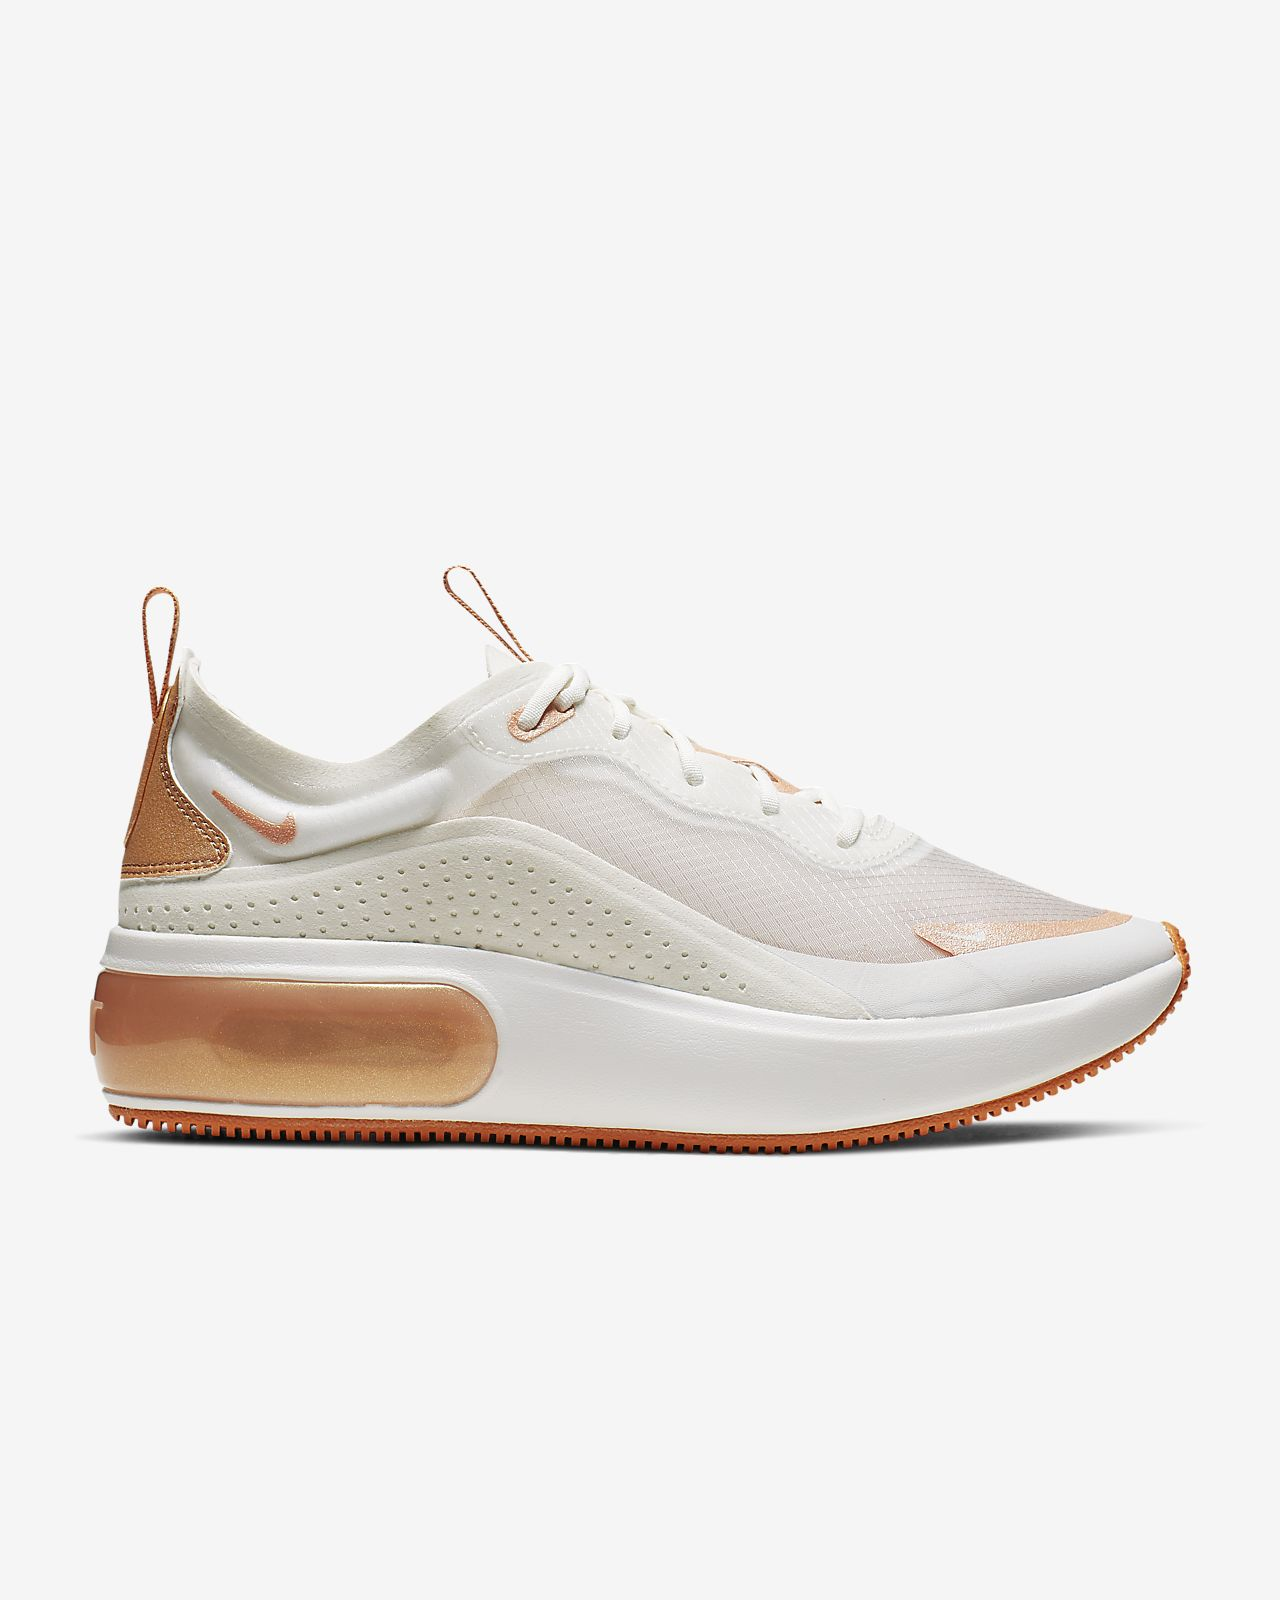 Nike Air Max Dia LX Summit whitesummit whitecopper moon ab